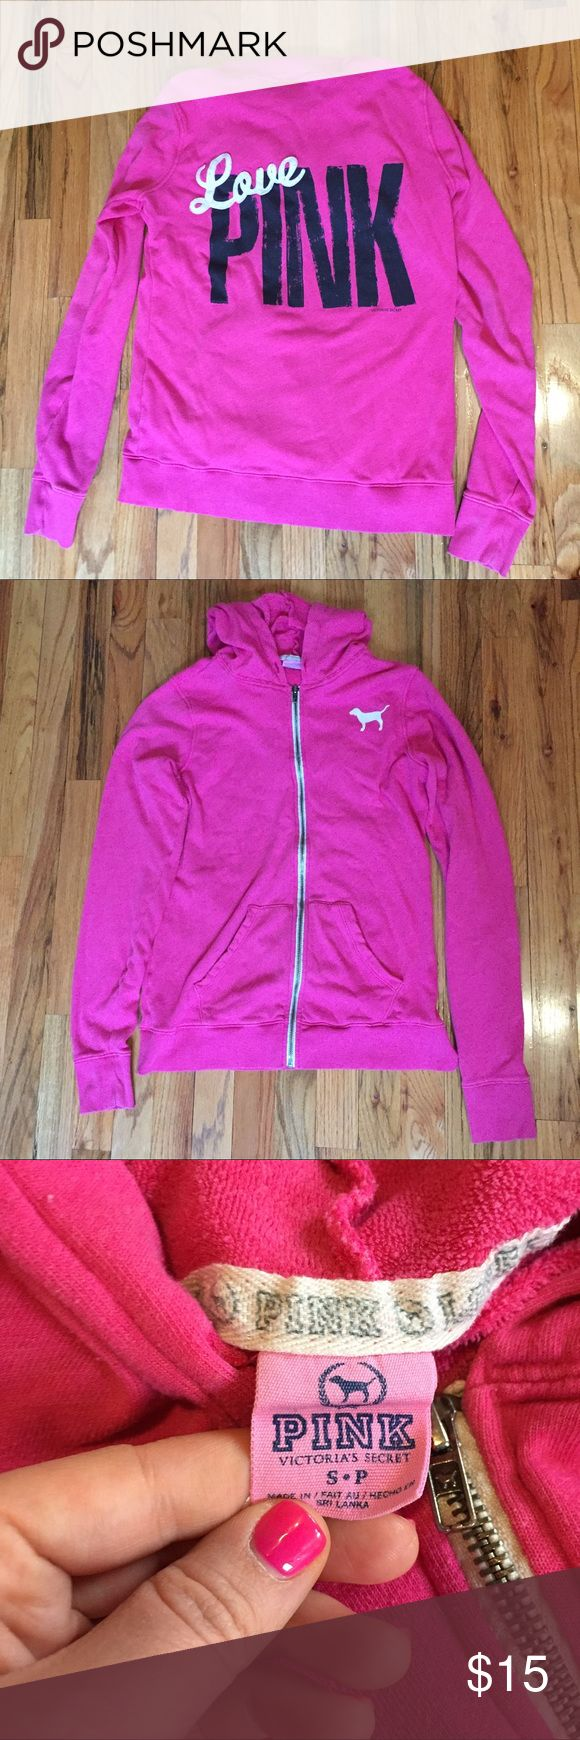 VS PINK Hot Pink Zip Up Hoodie Well loved but still in good condition. PINK Victoria's Secret Tops Sweatshirts & Hoodies